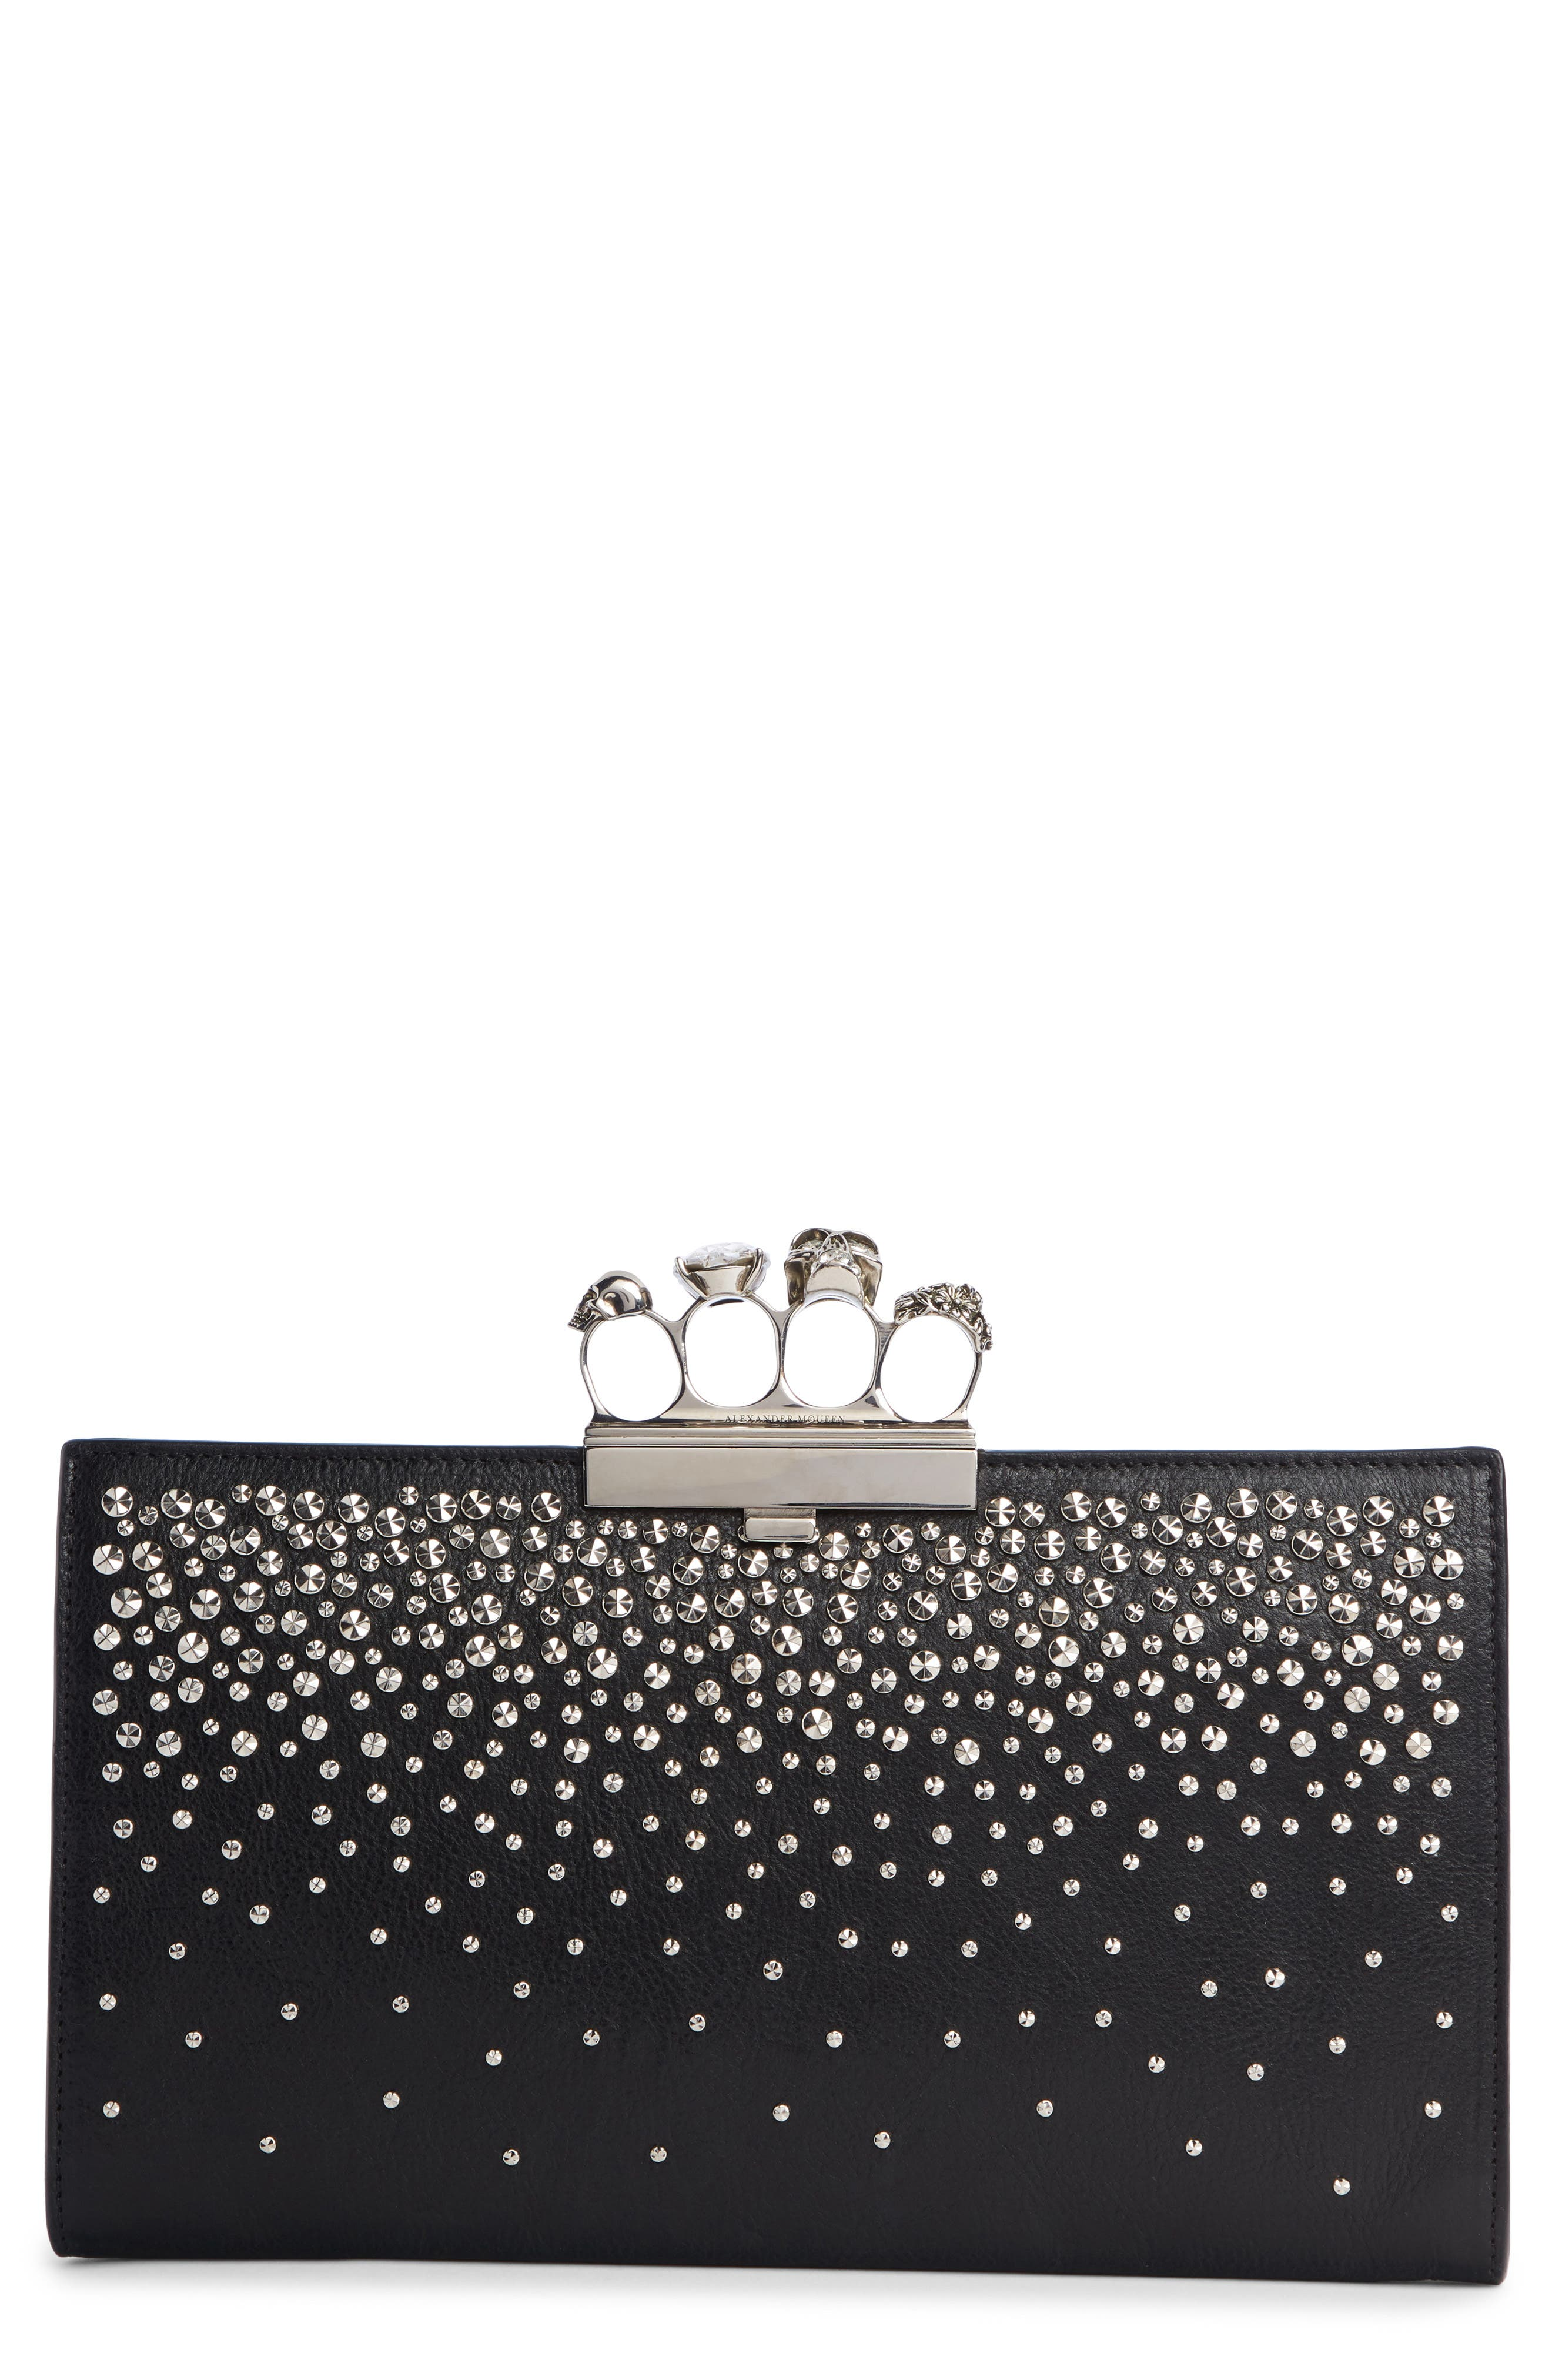 Four Ring Studded Knuckle Clasp Leather Clutch, Main, color, BLACK